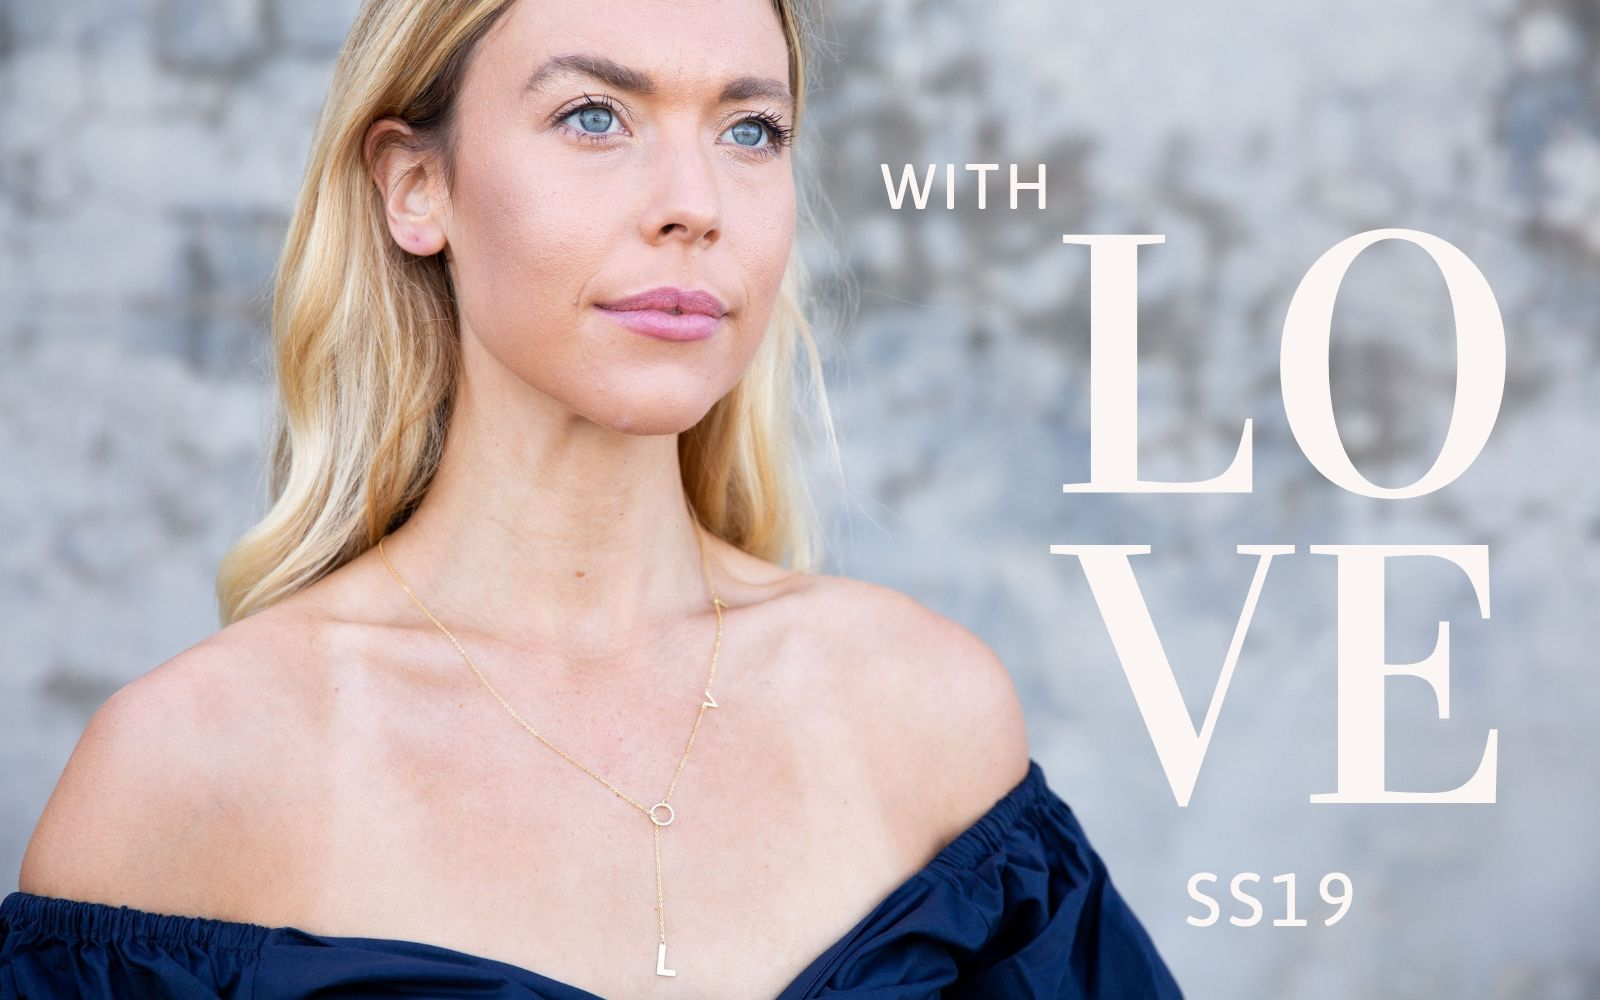 SS19 With Love Collection - Chuchka